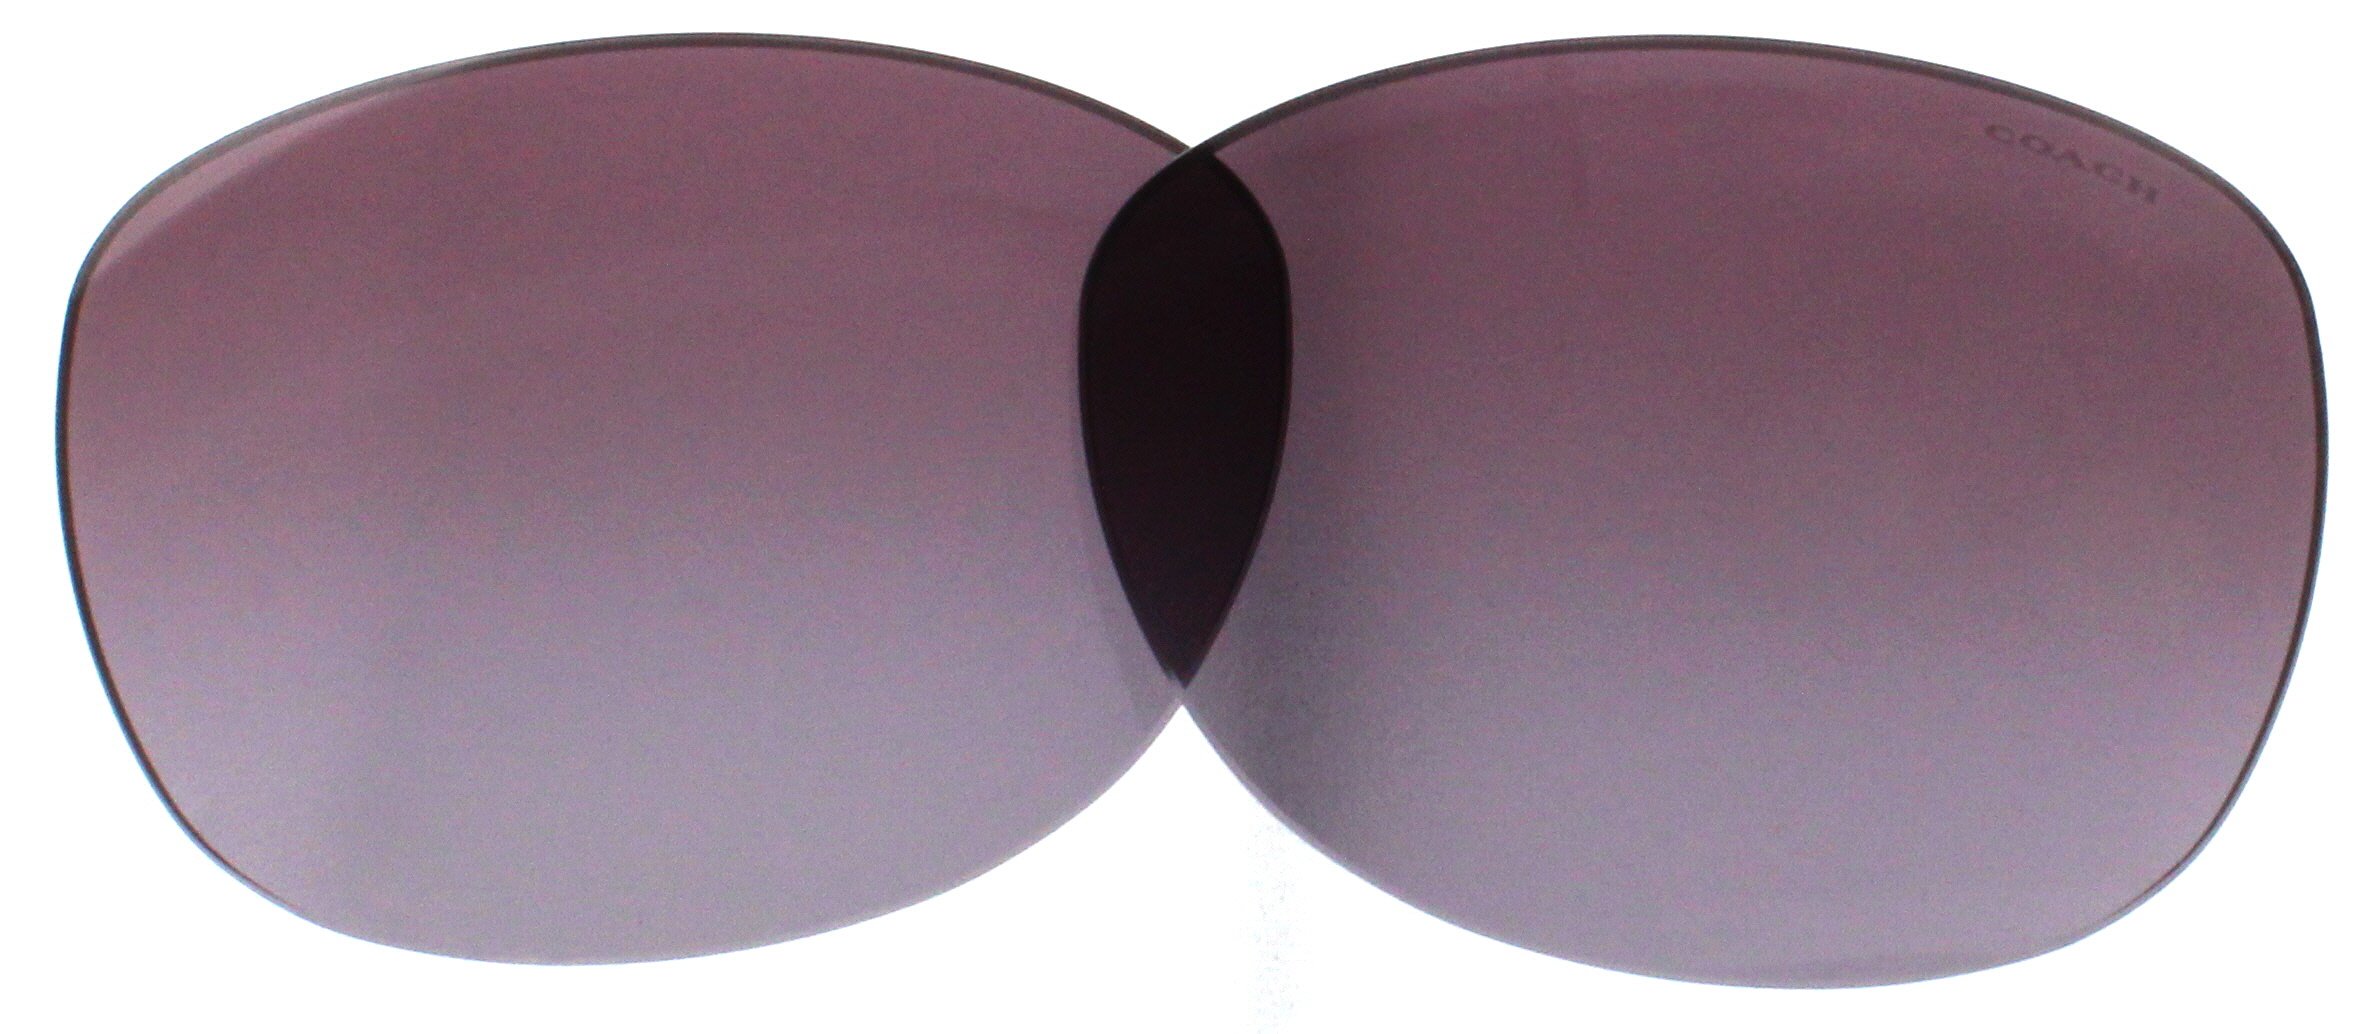 c3f610dcb019 Image is loading COACH-Replacement-Lenses-HC8132-Purple-Gradient-57MM